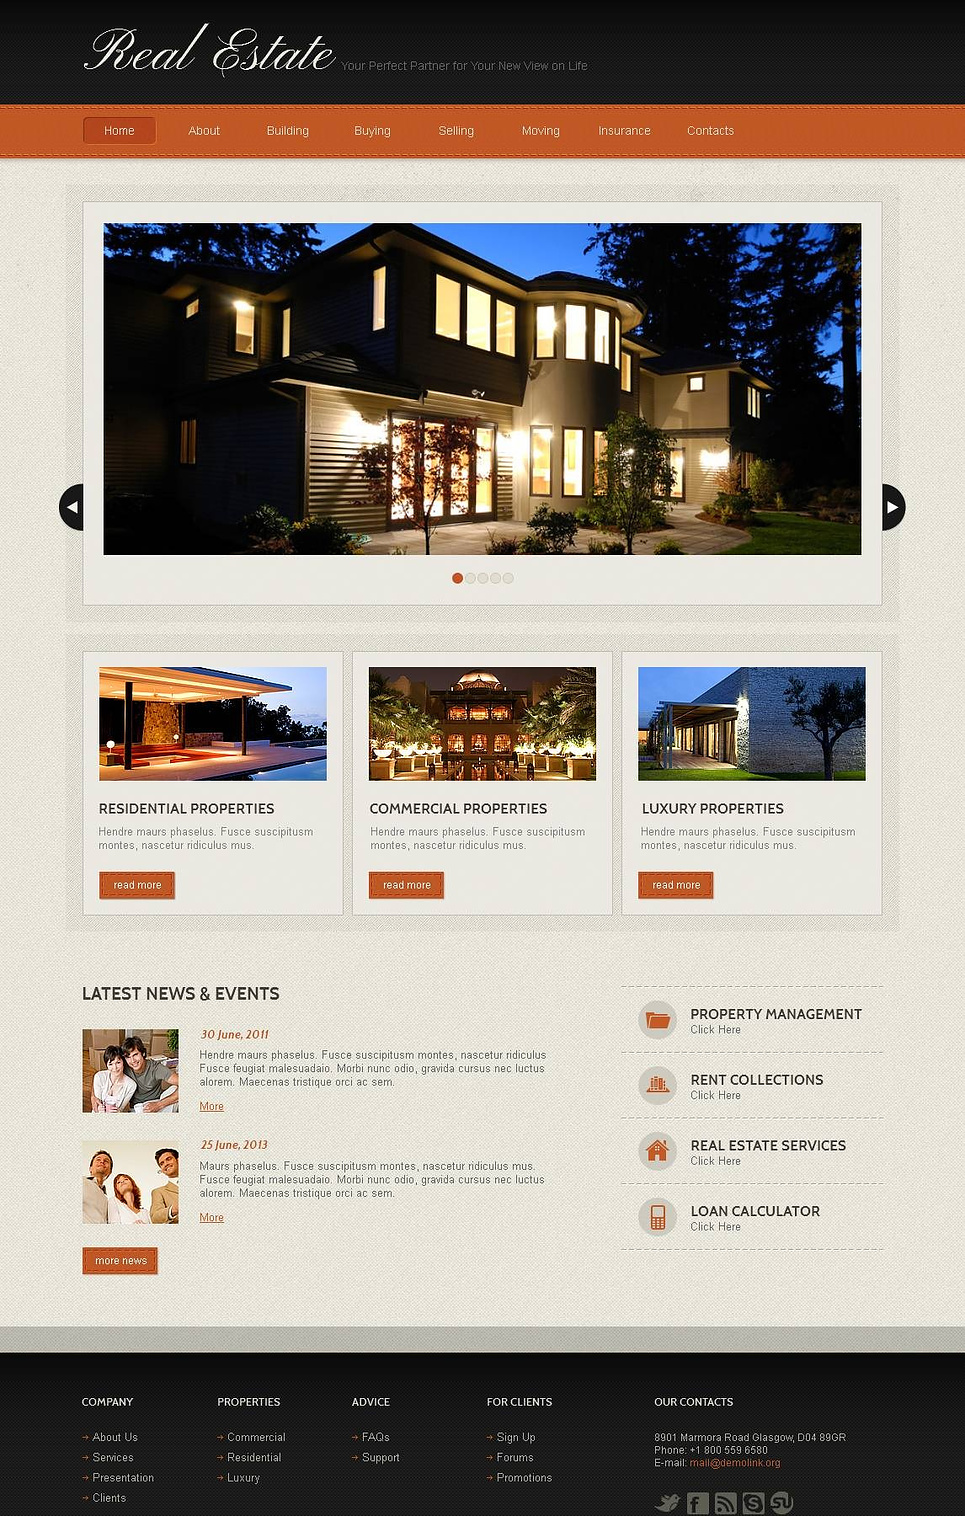 Real Estate Website Template with Elegant Look - image